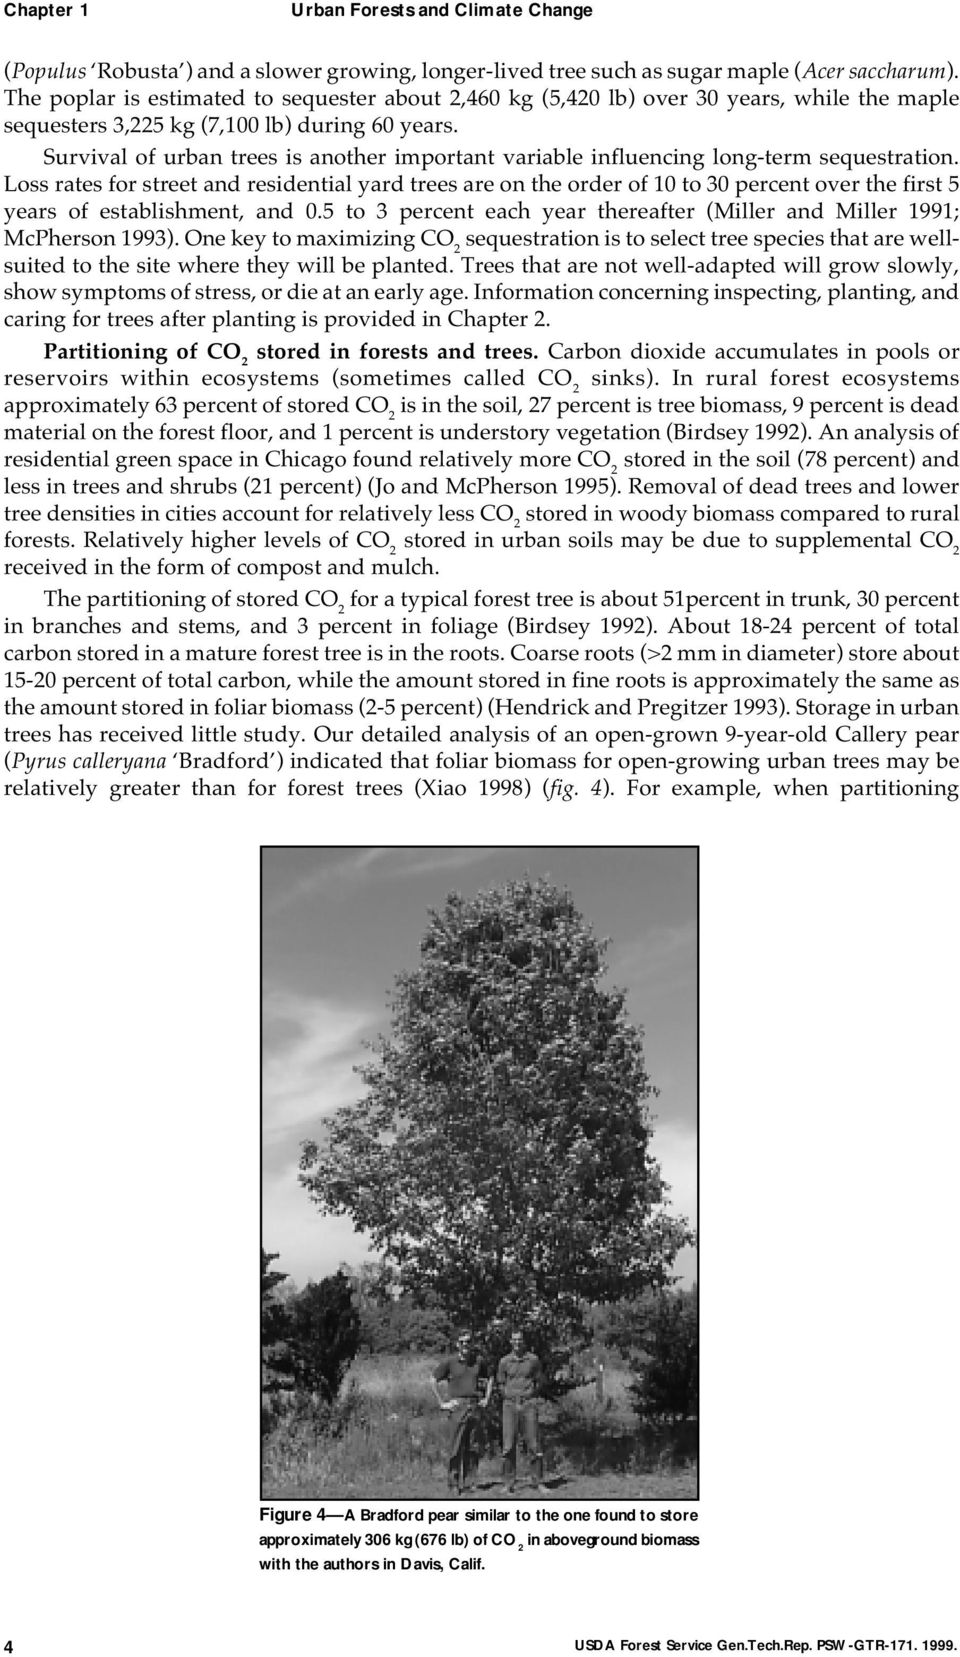 Survival of urban trees is another important variable influencing long-term sequestration.